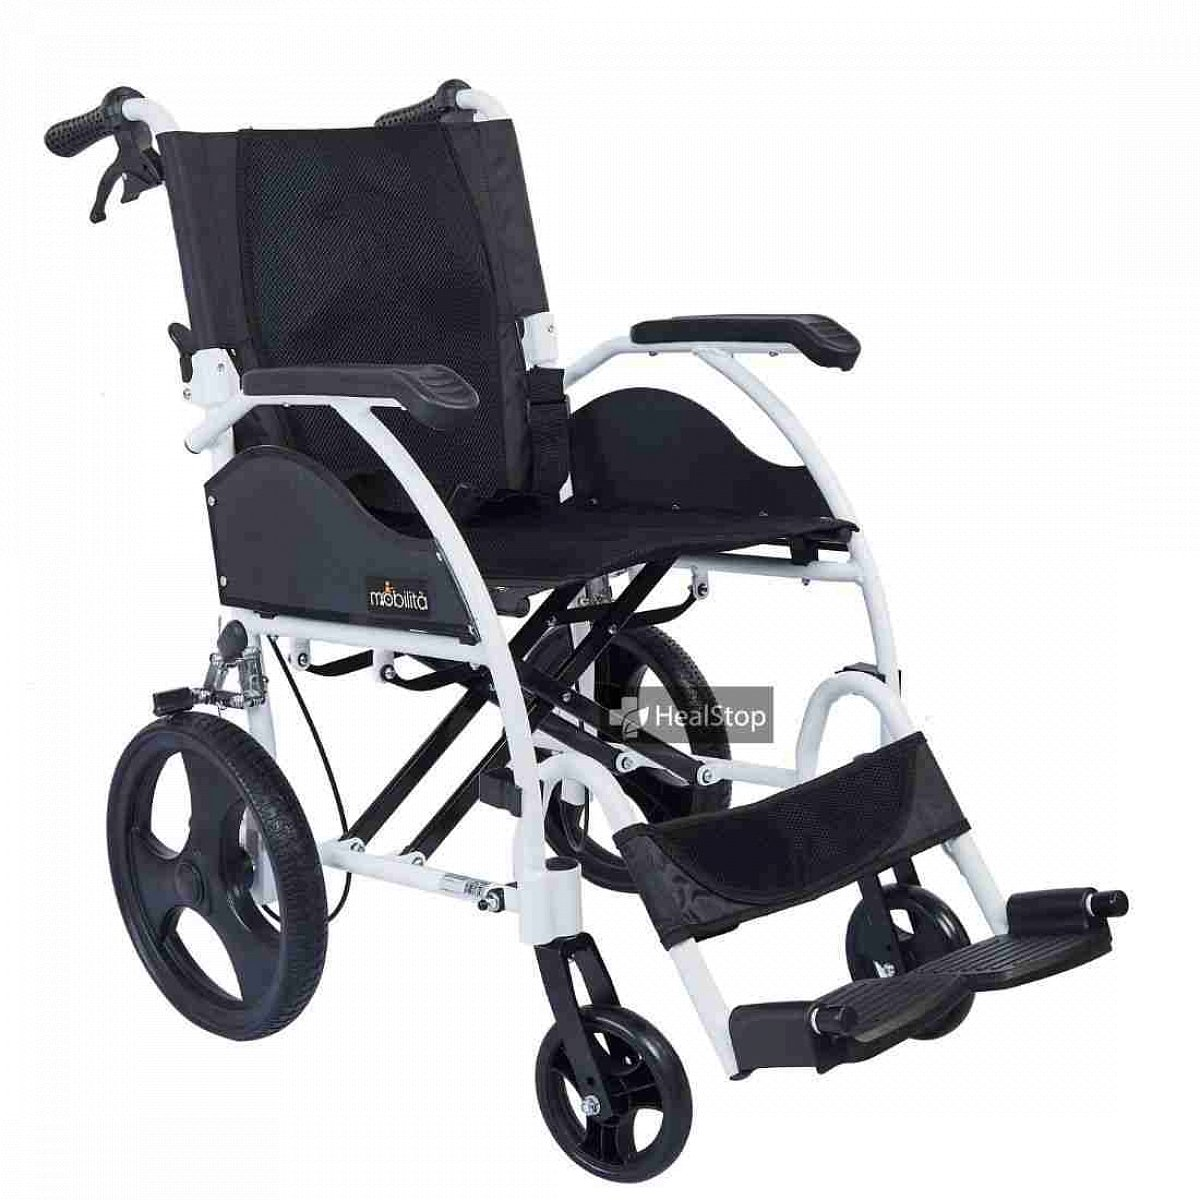 12 Inches Wheelchair - M605MW - Metallic White